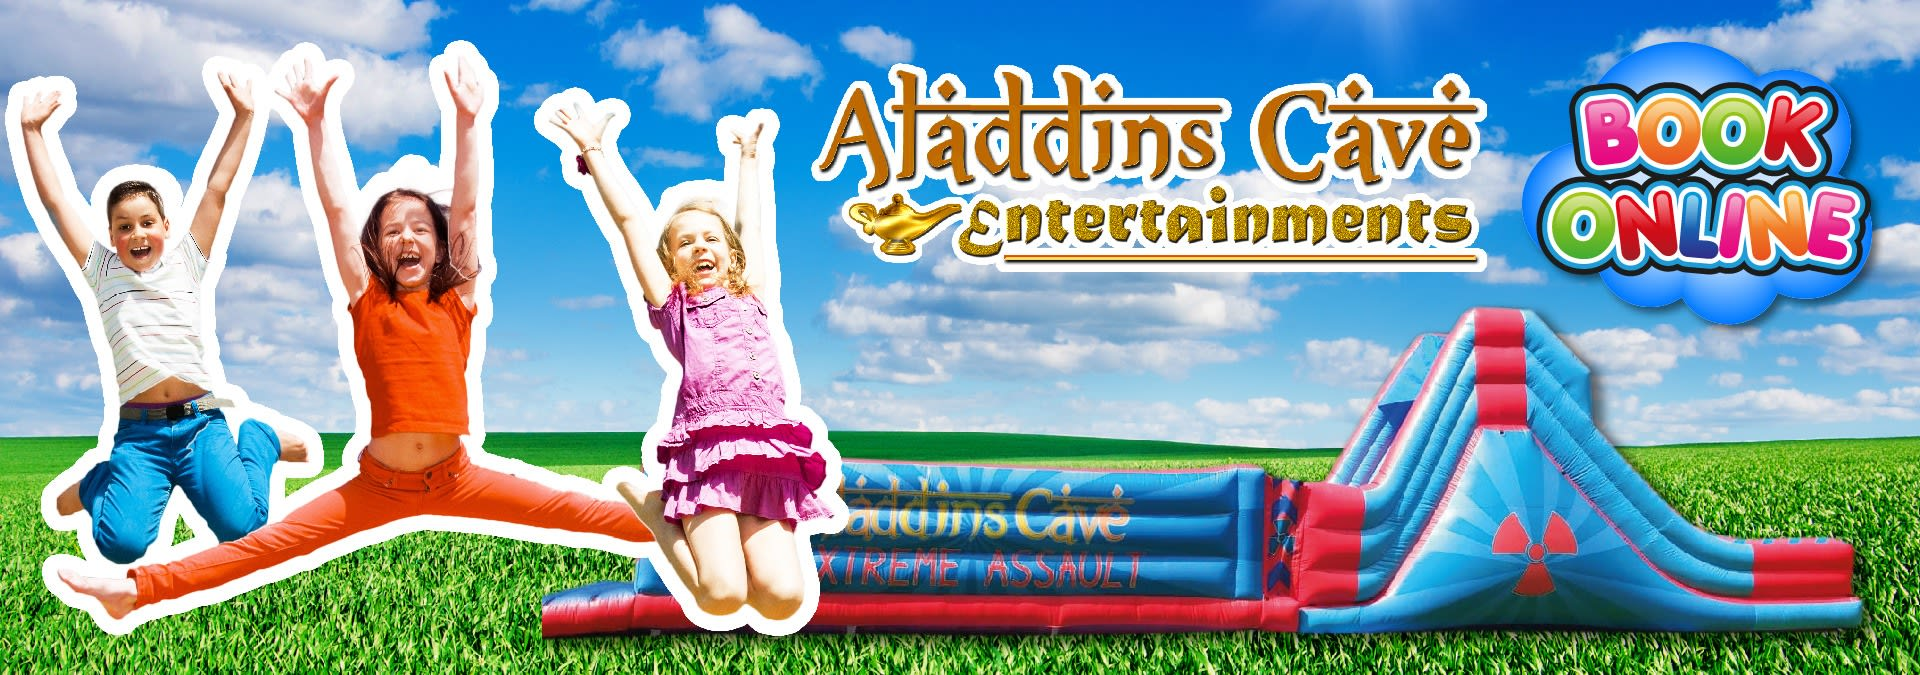 Aladdins Cave Entertainments